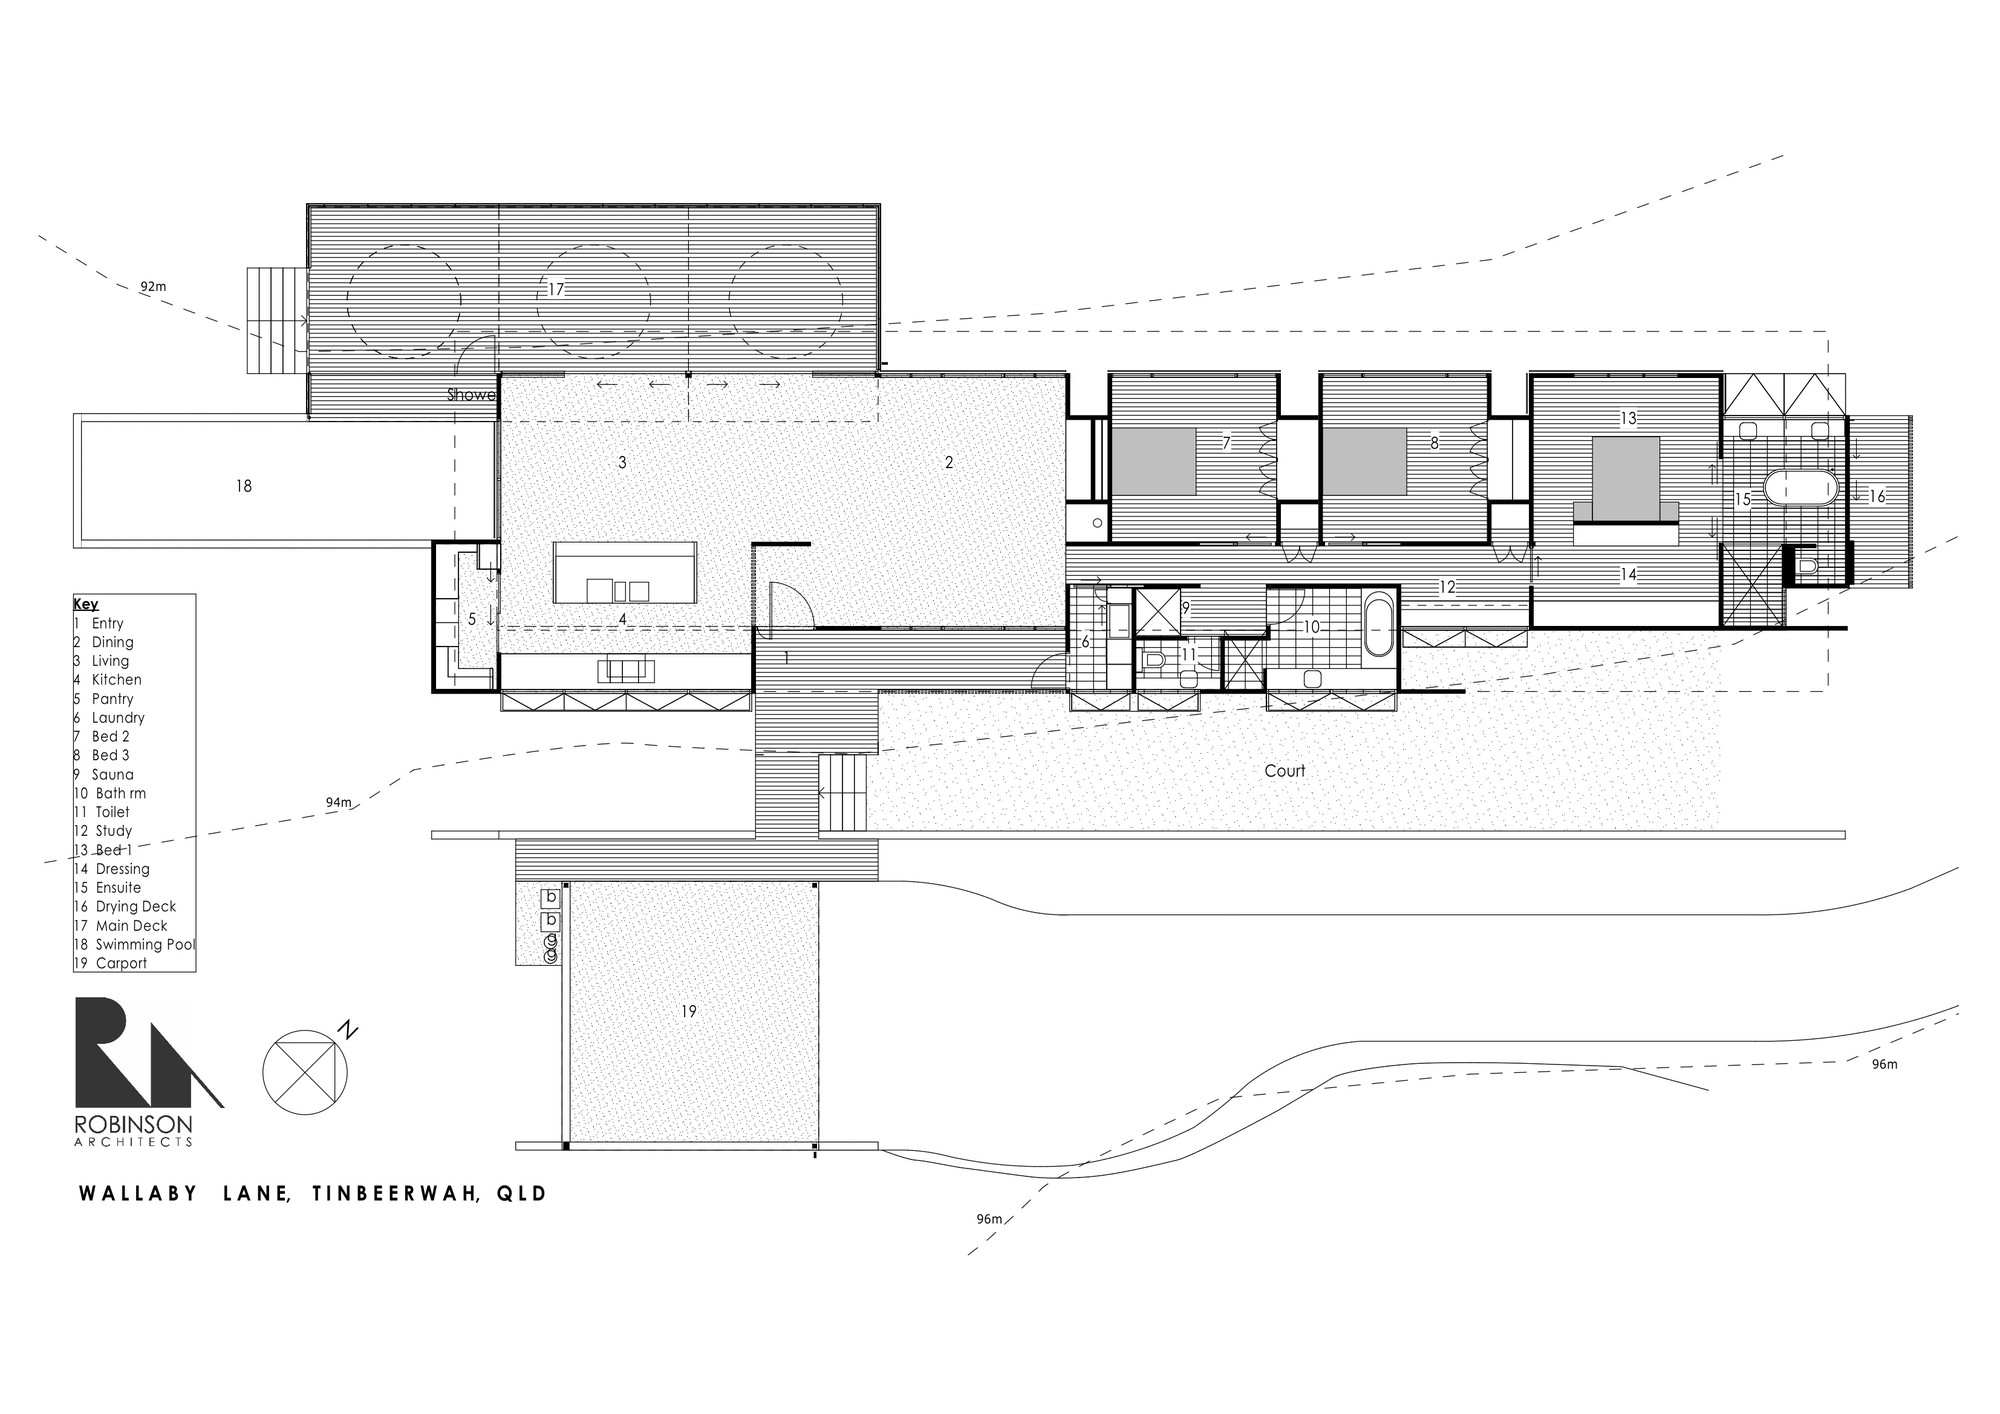 Wallaby lane house robinson architects archdaily for Robinson house plans